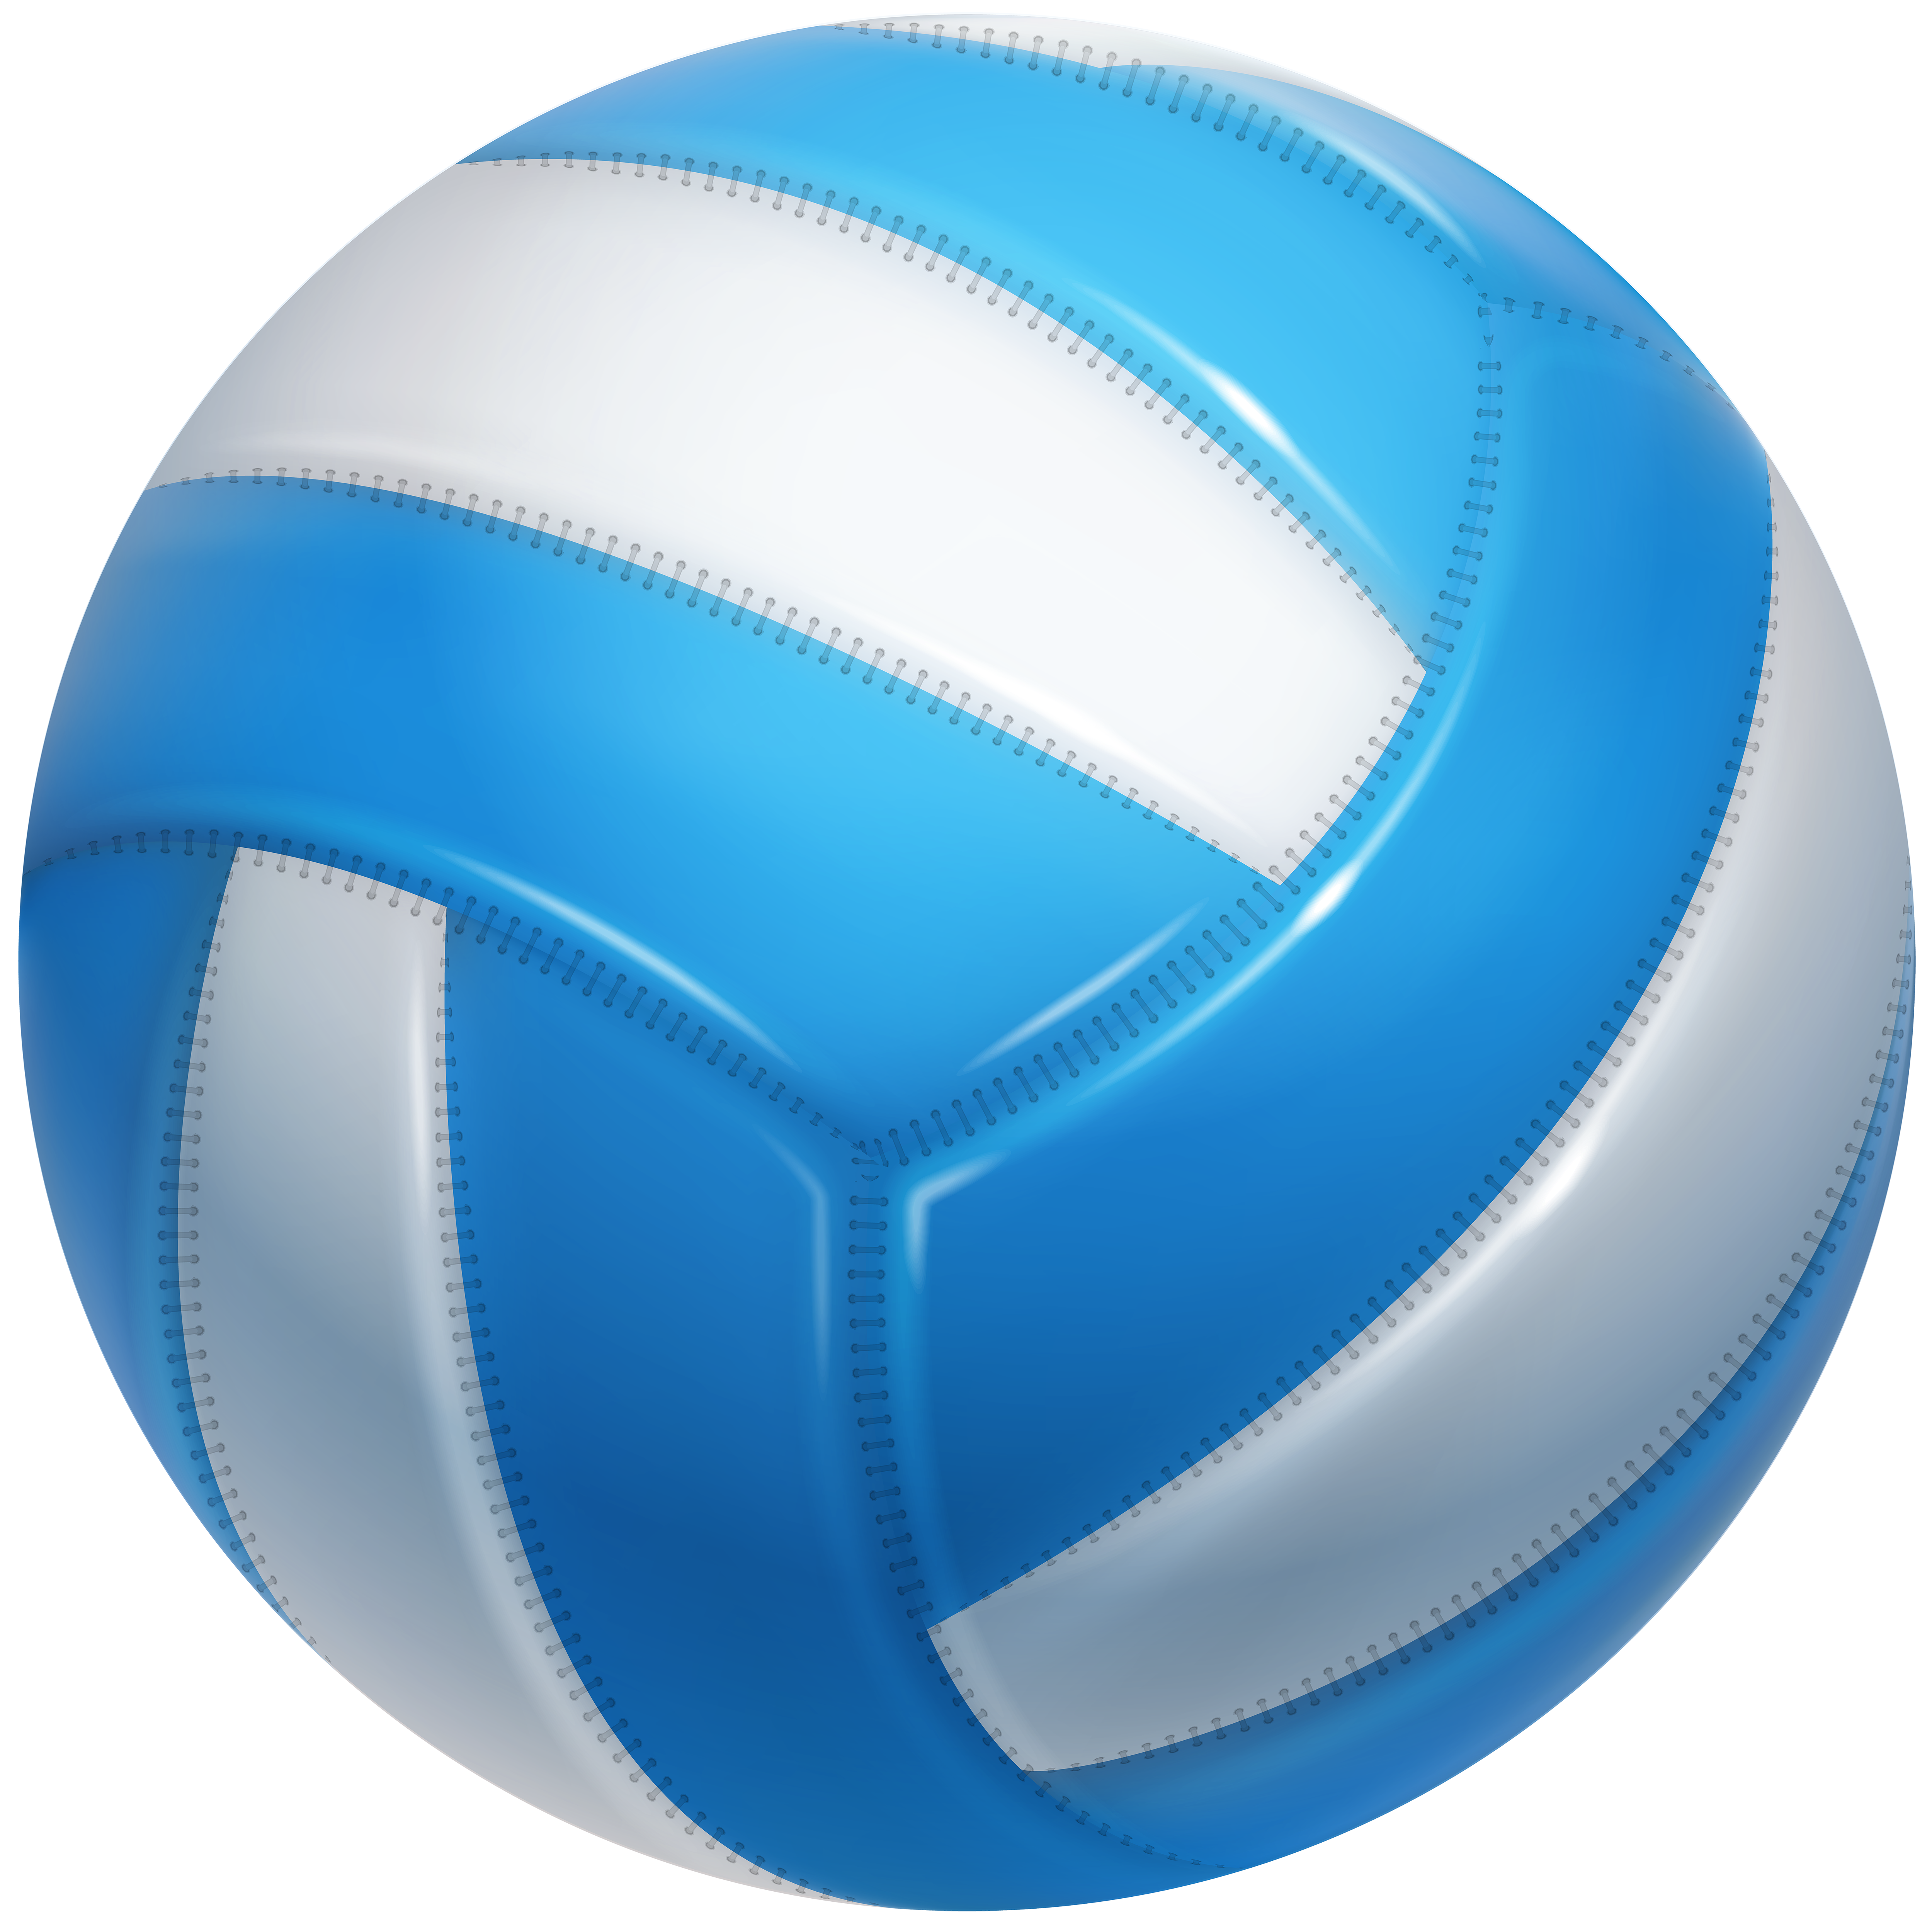 Volleyball ball png. Transparent clip art image